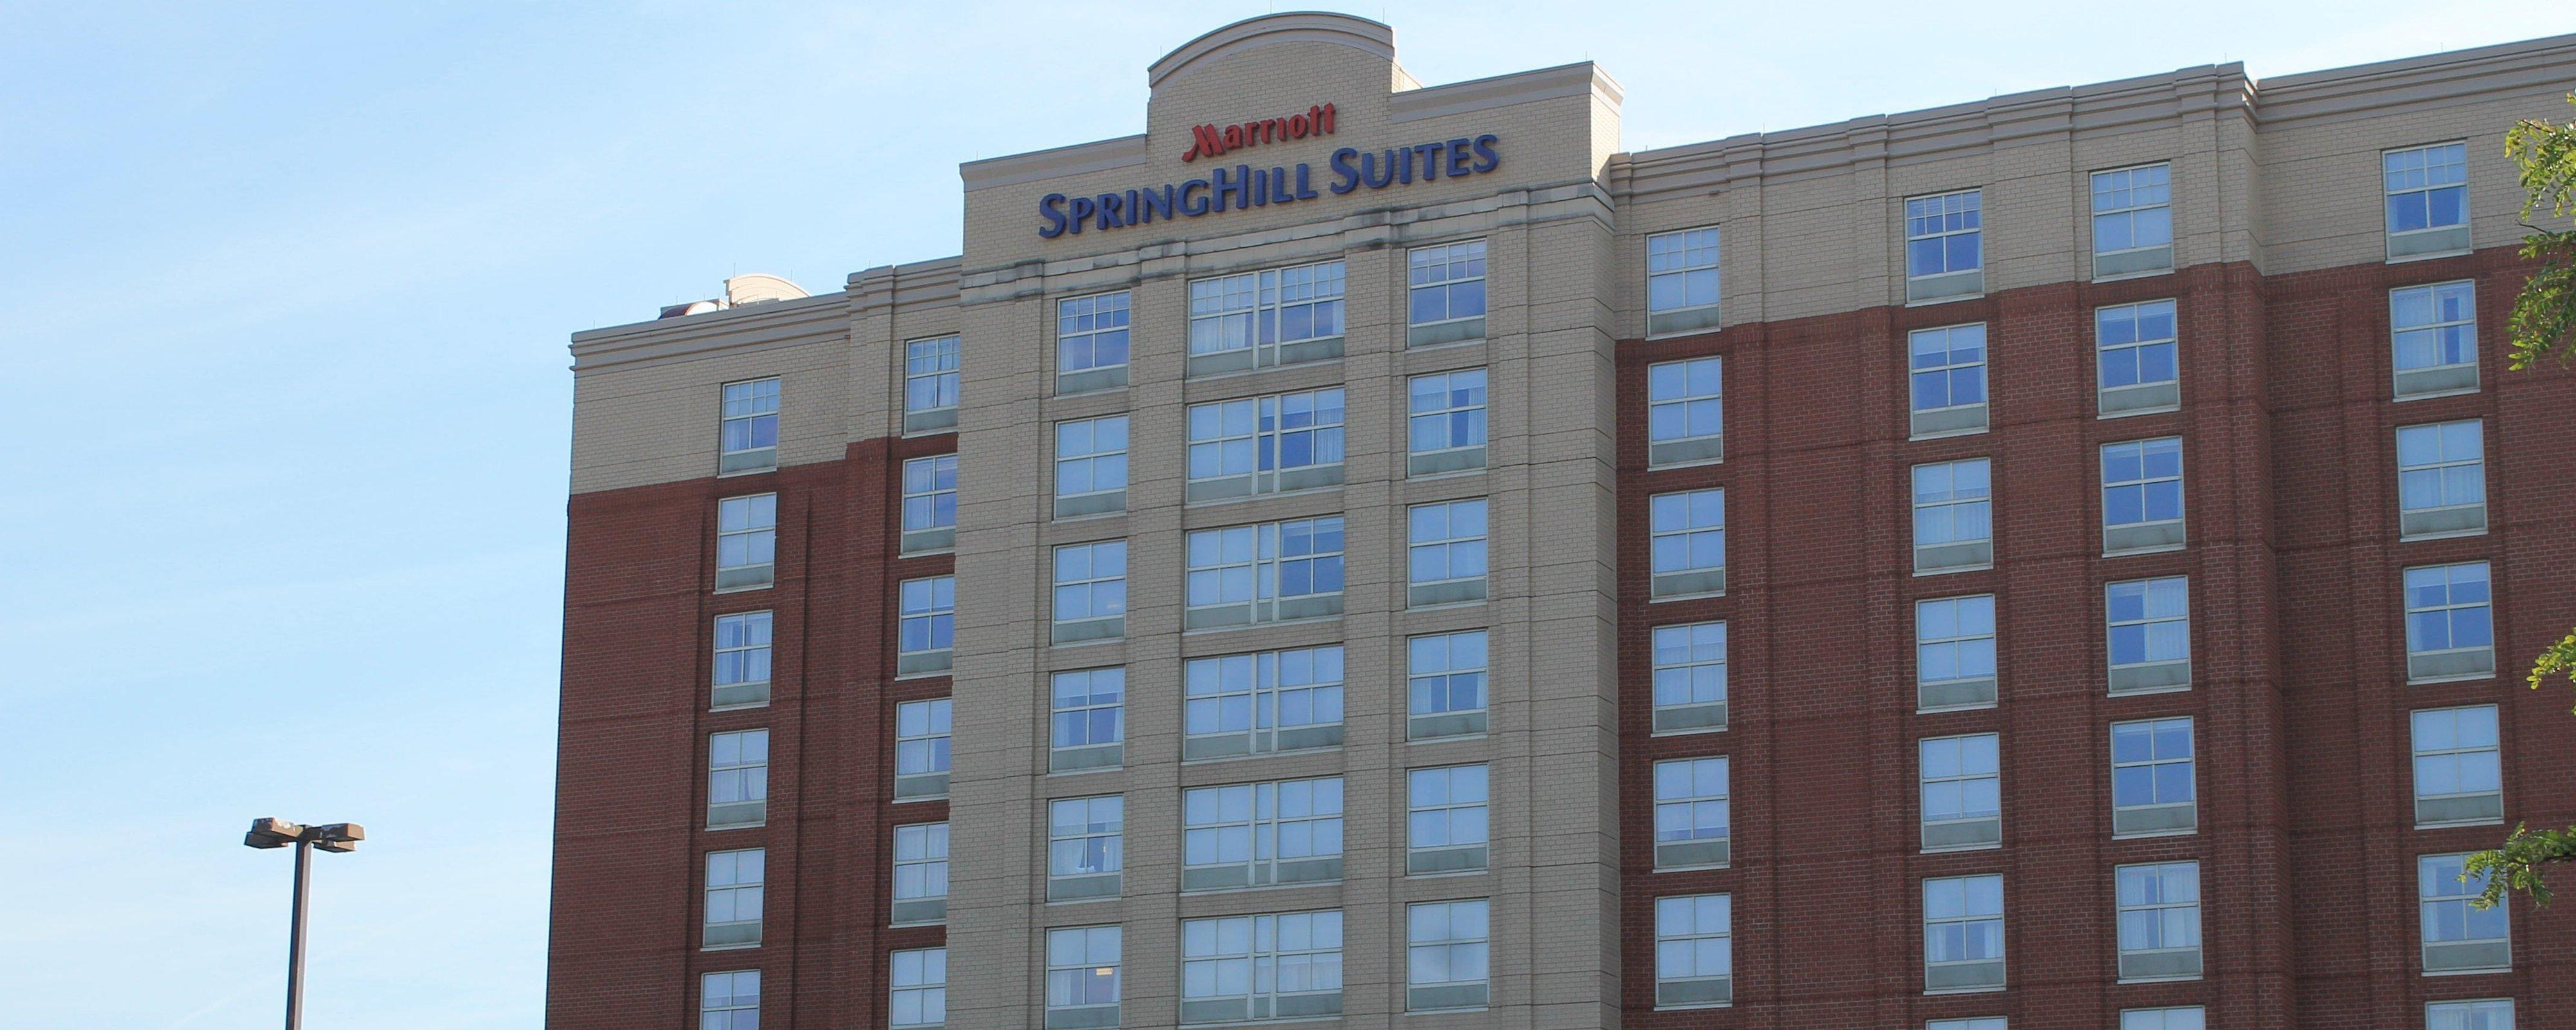 Hotel In North Shore Pittsburgh With Pool Springhill Suites